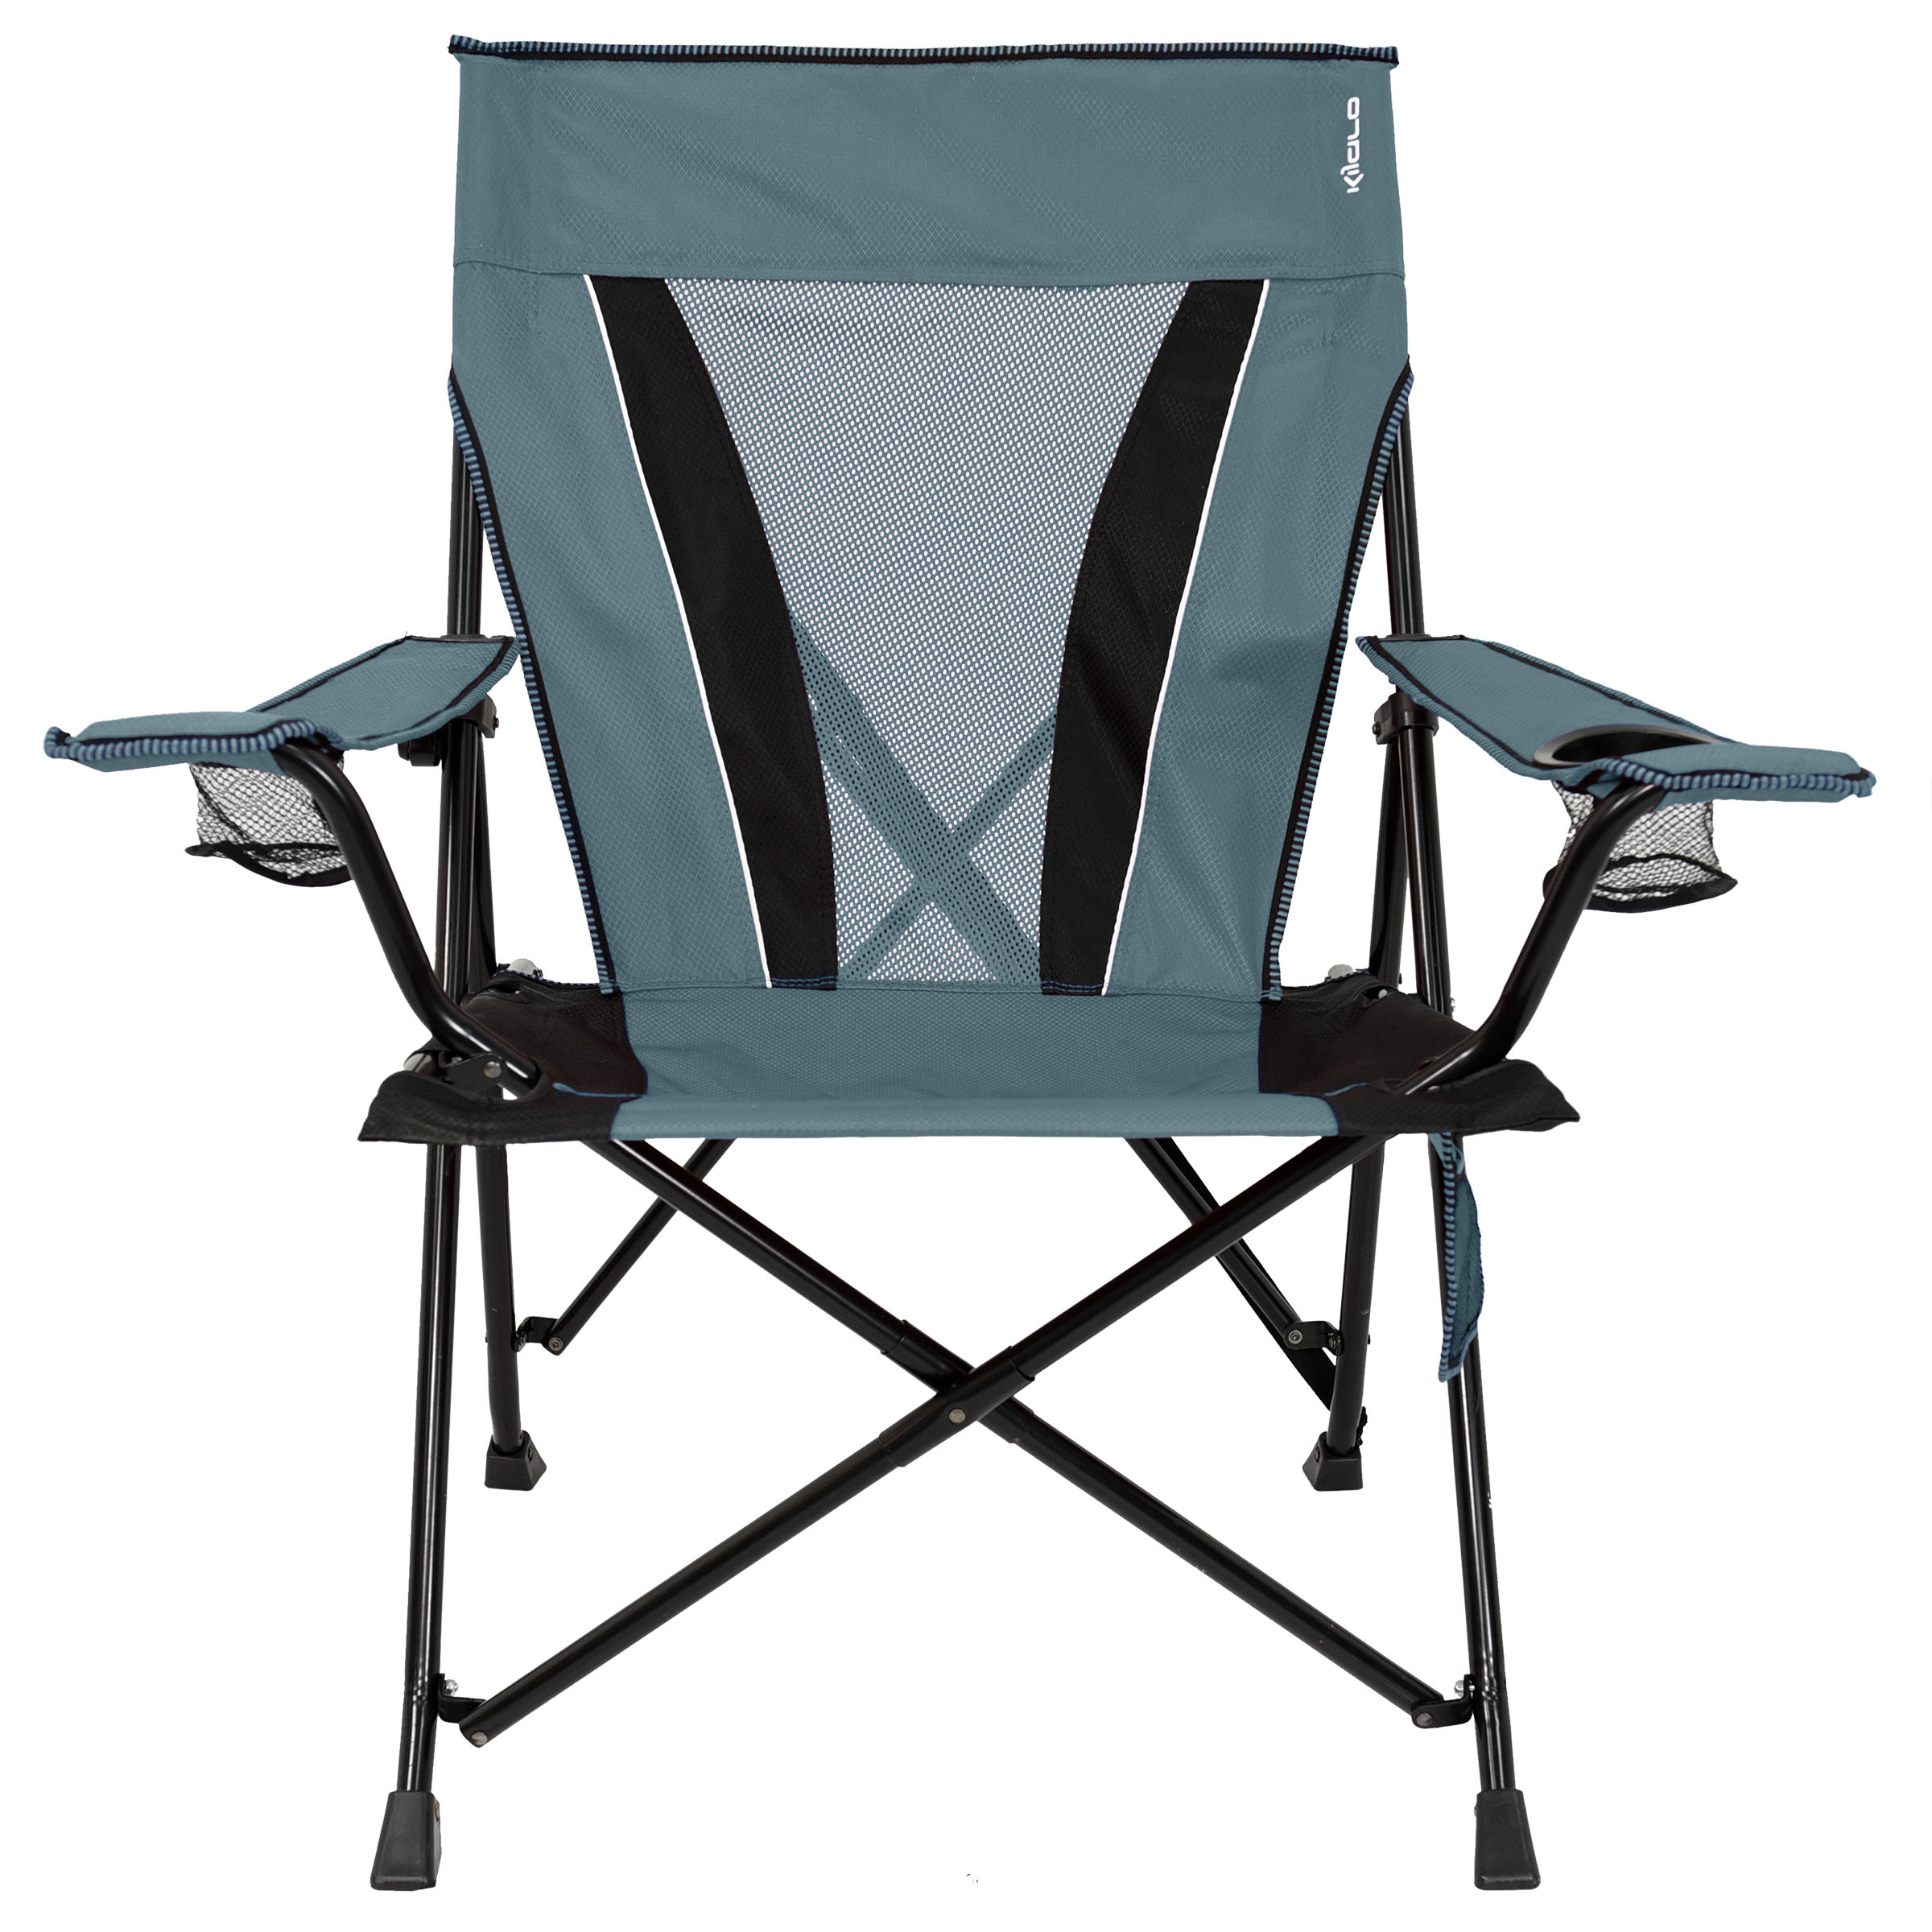 Iron Frame Locking Portable Folding Chairs Inside Well Known Xxl Dual Lock Chair – Walmart (View 7 of 25)